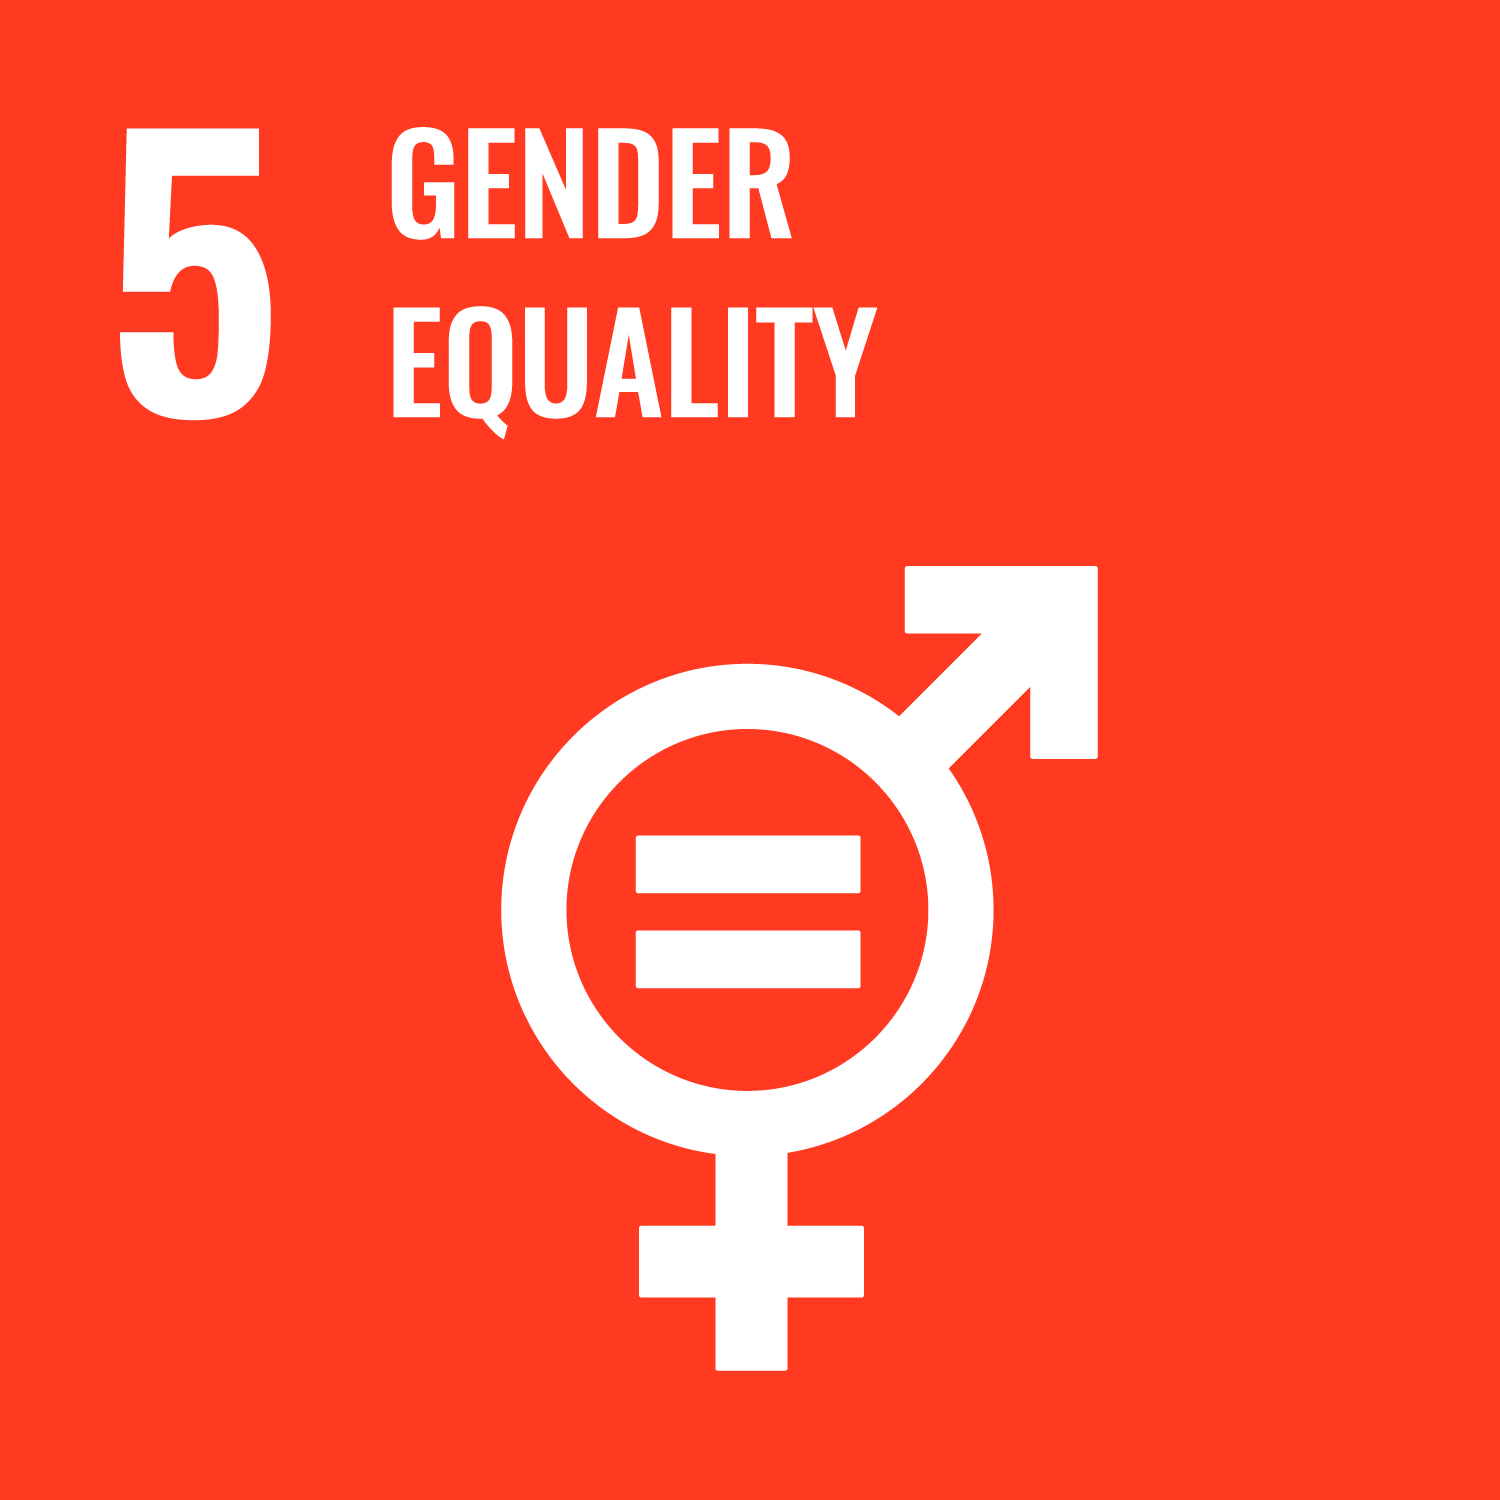 Goal number 5 of the SDGs: Gender Equality